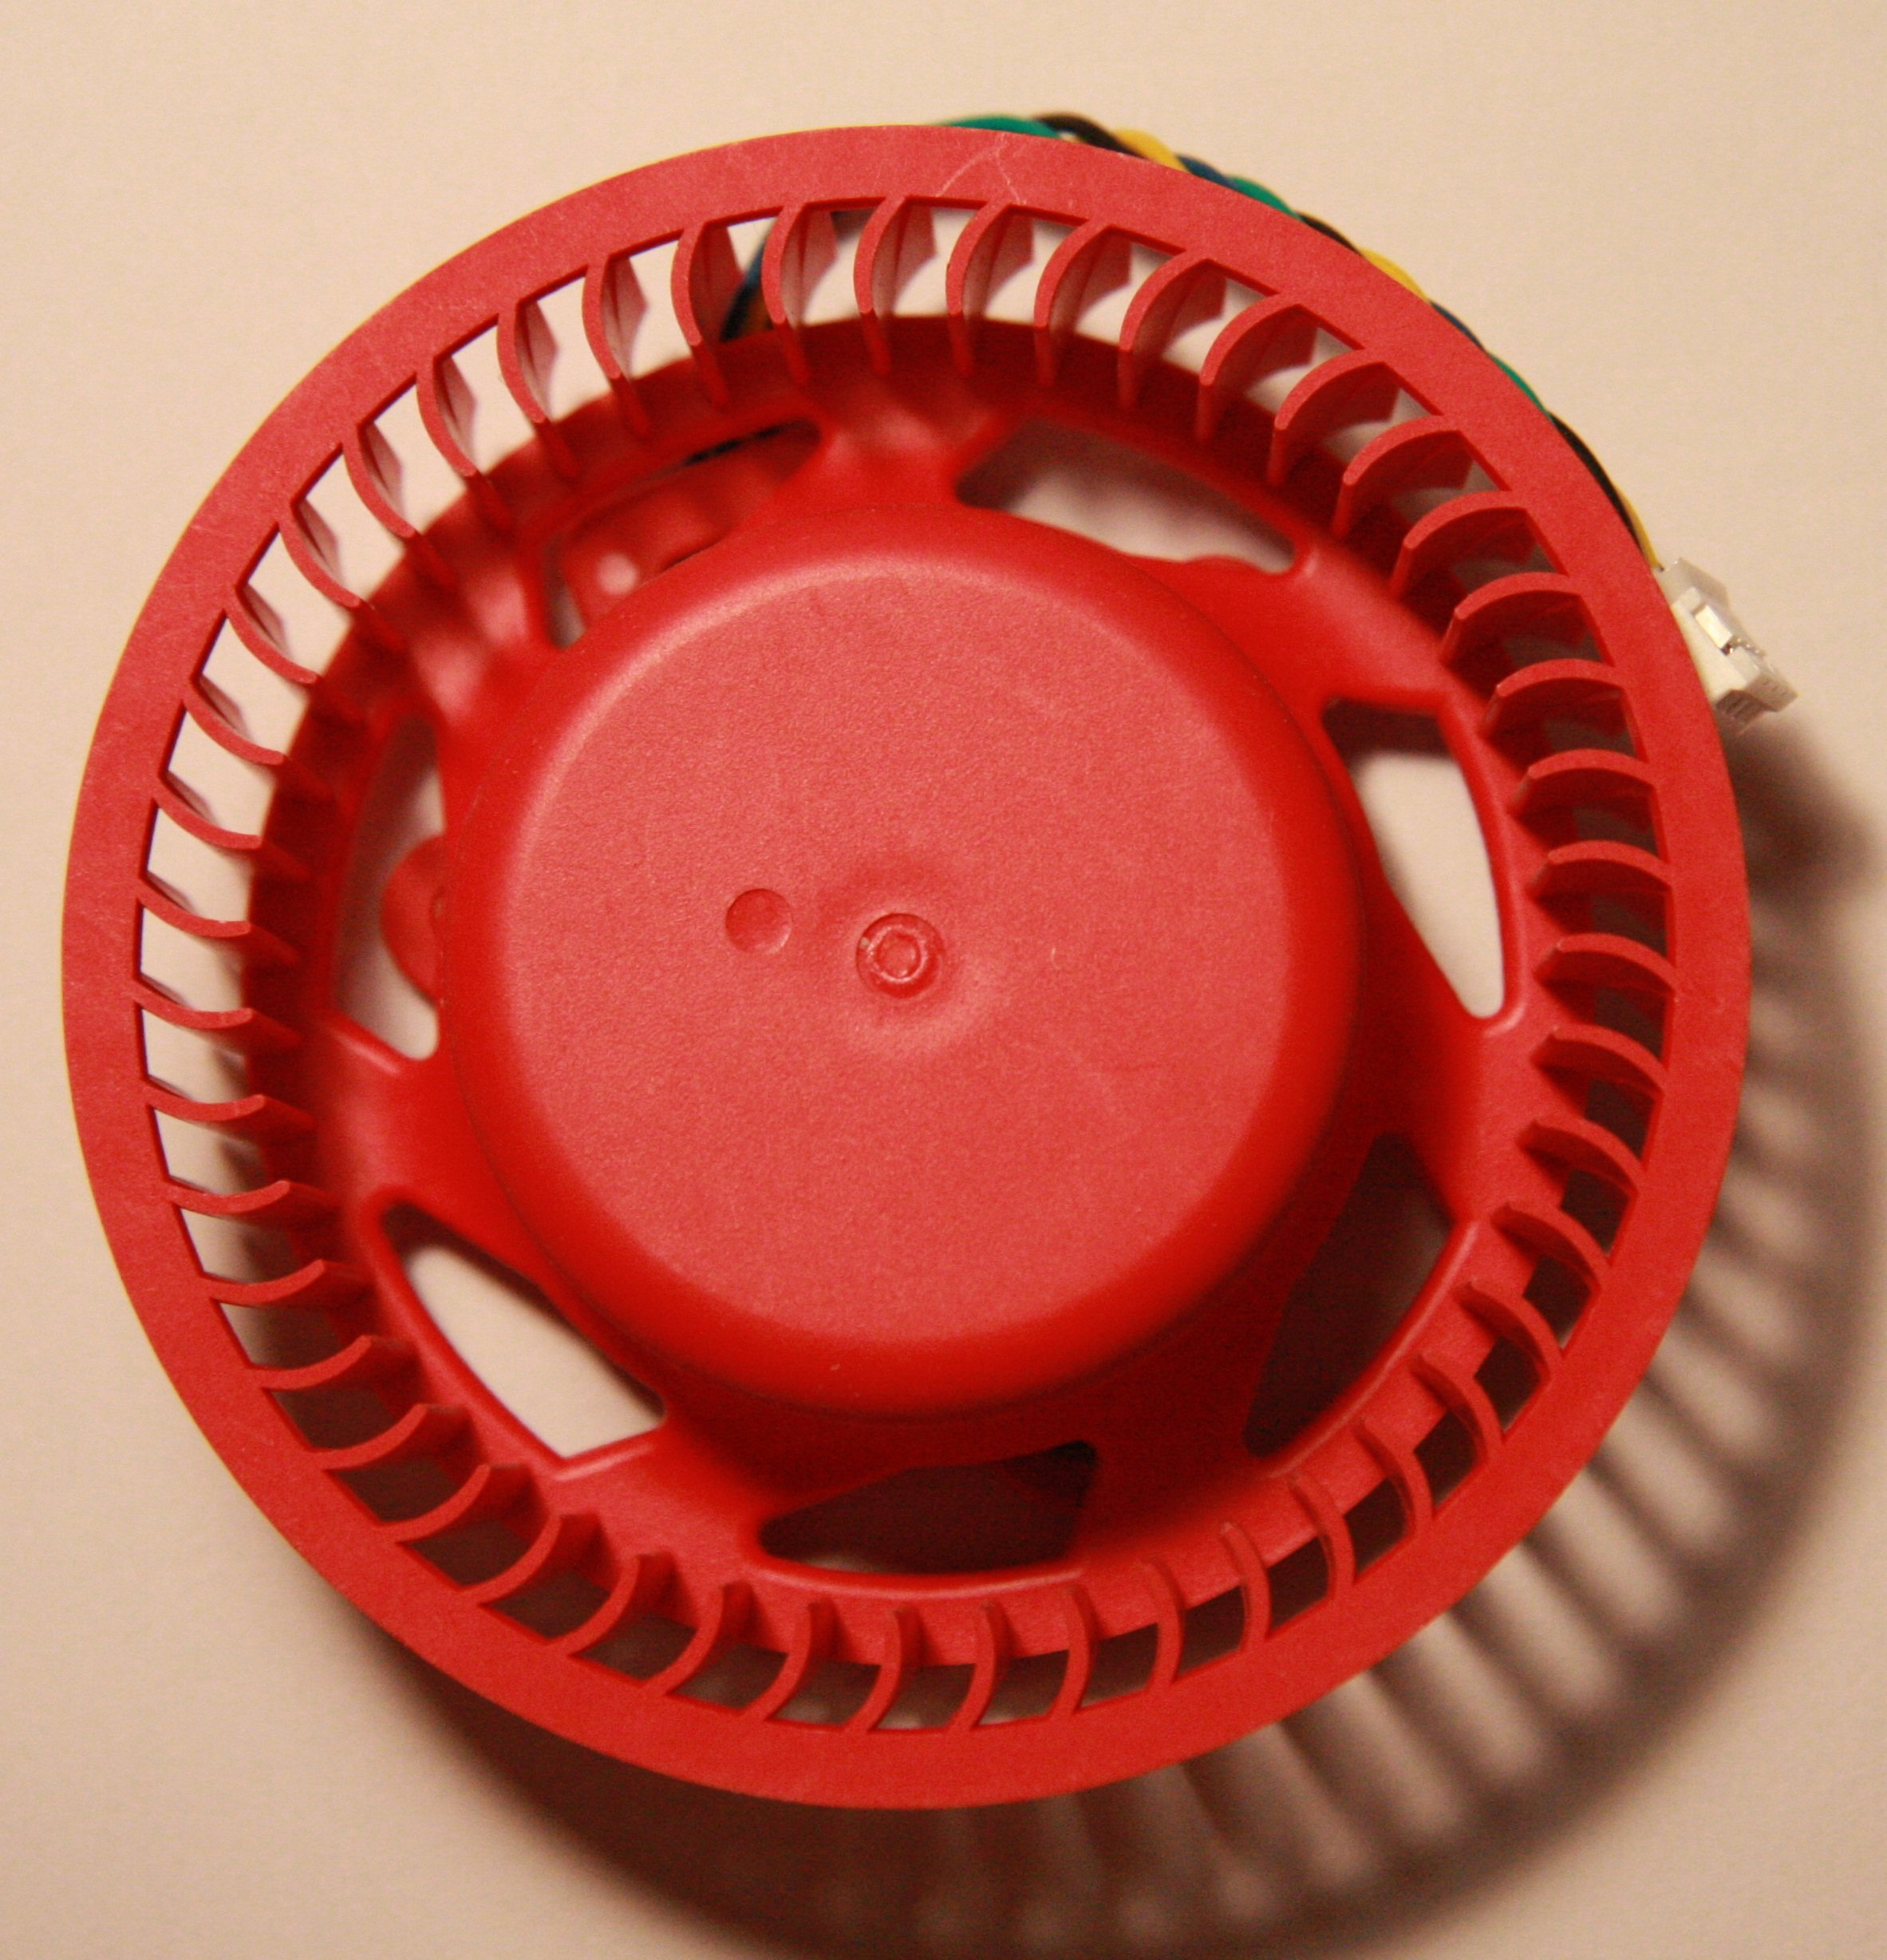 Video Card Red Fan Replacement for ATI/AMD Radeon 7950 7990 6970 6950 5970 5870 5850 5650 4890 4870 and etc (75mm fan, 4pin)